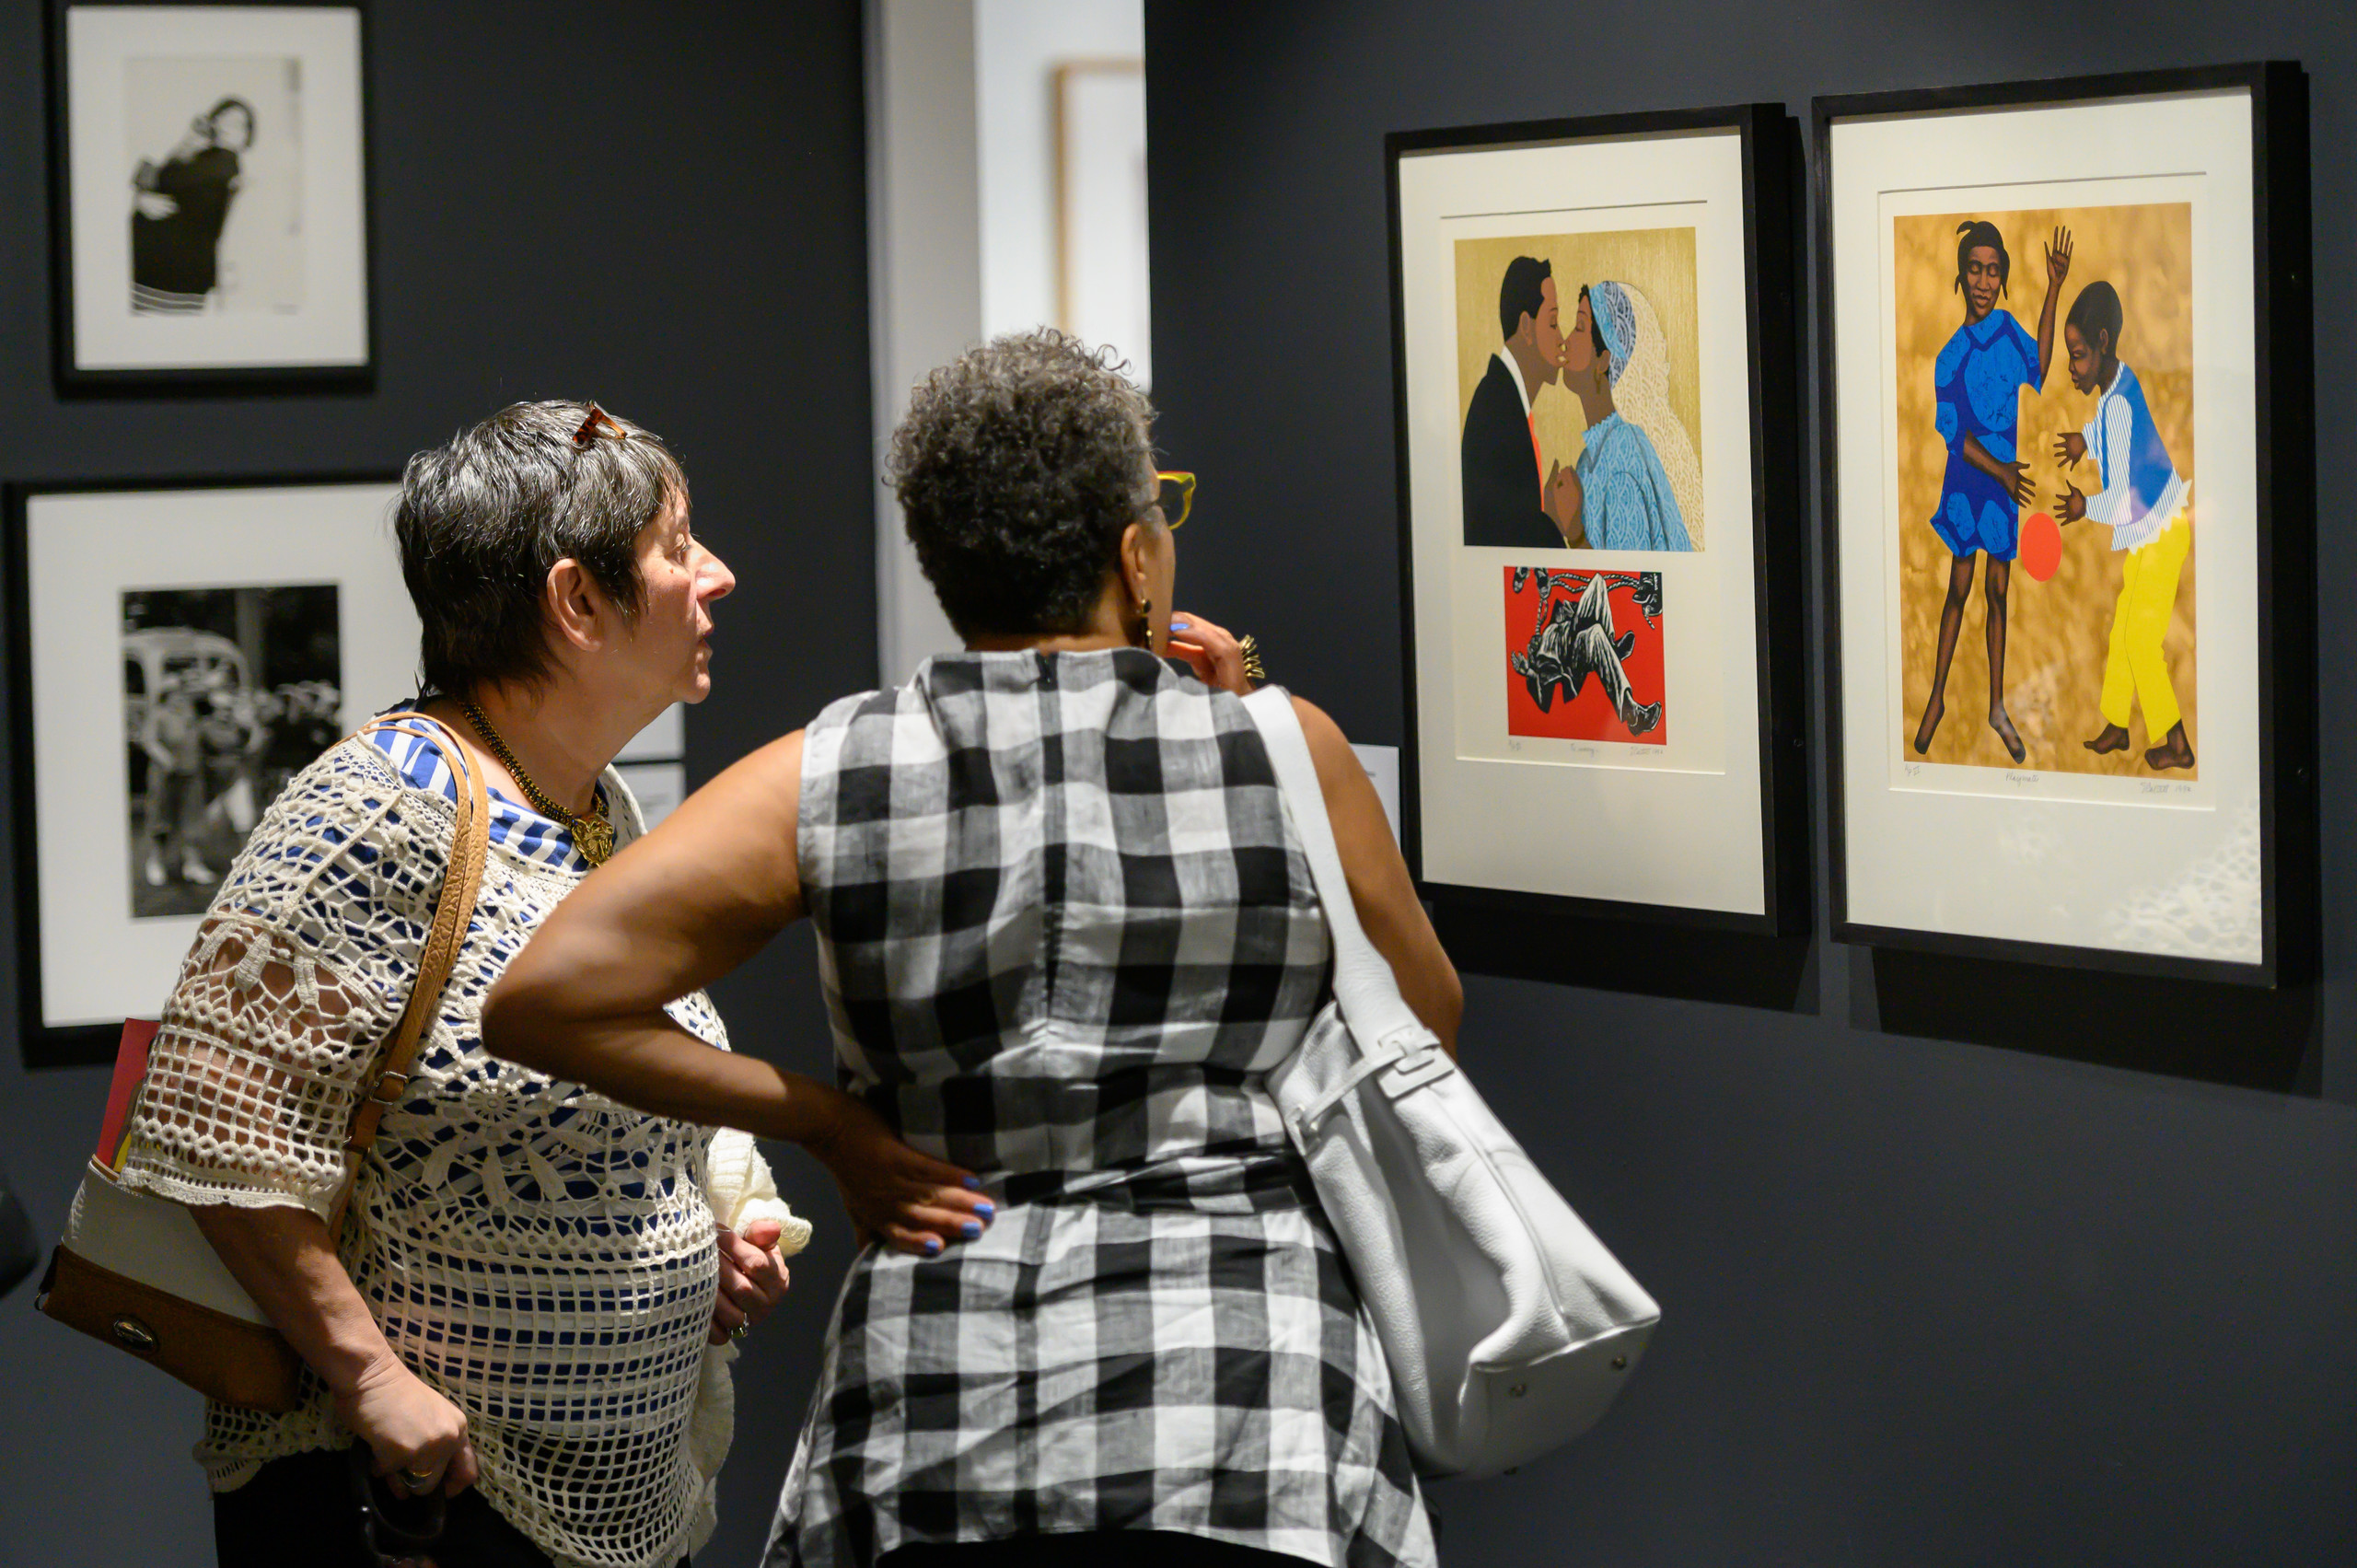 Two older women, one light-skinned with gray hair and one medium-dark skinned with short dark hair, stand next to one another deep in conversation about a series of prints by Elizabeth Catlett.